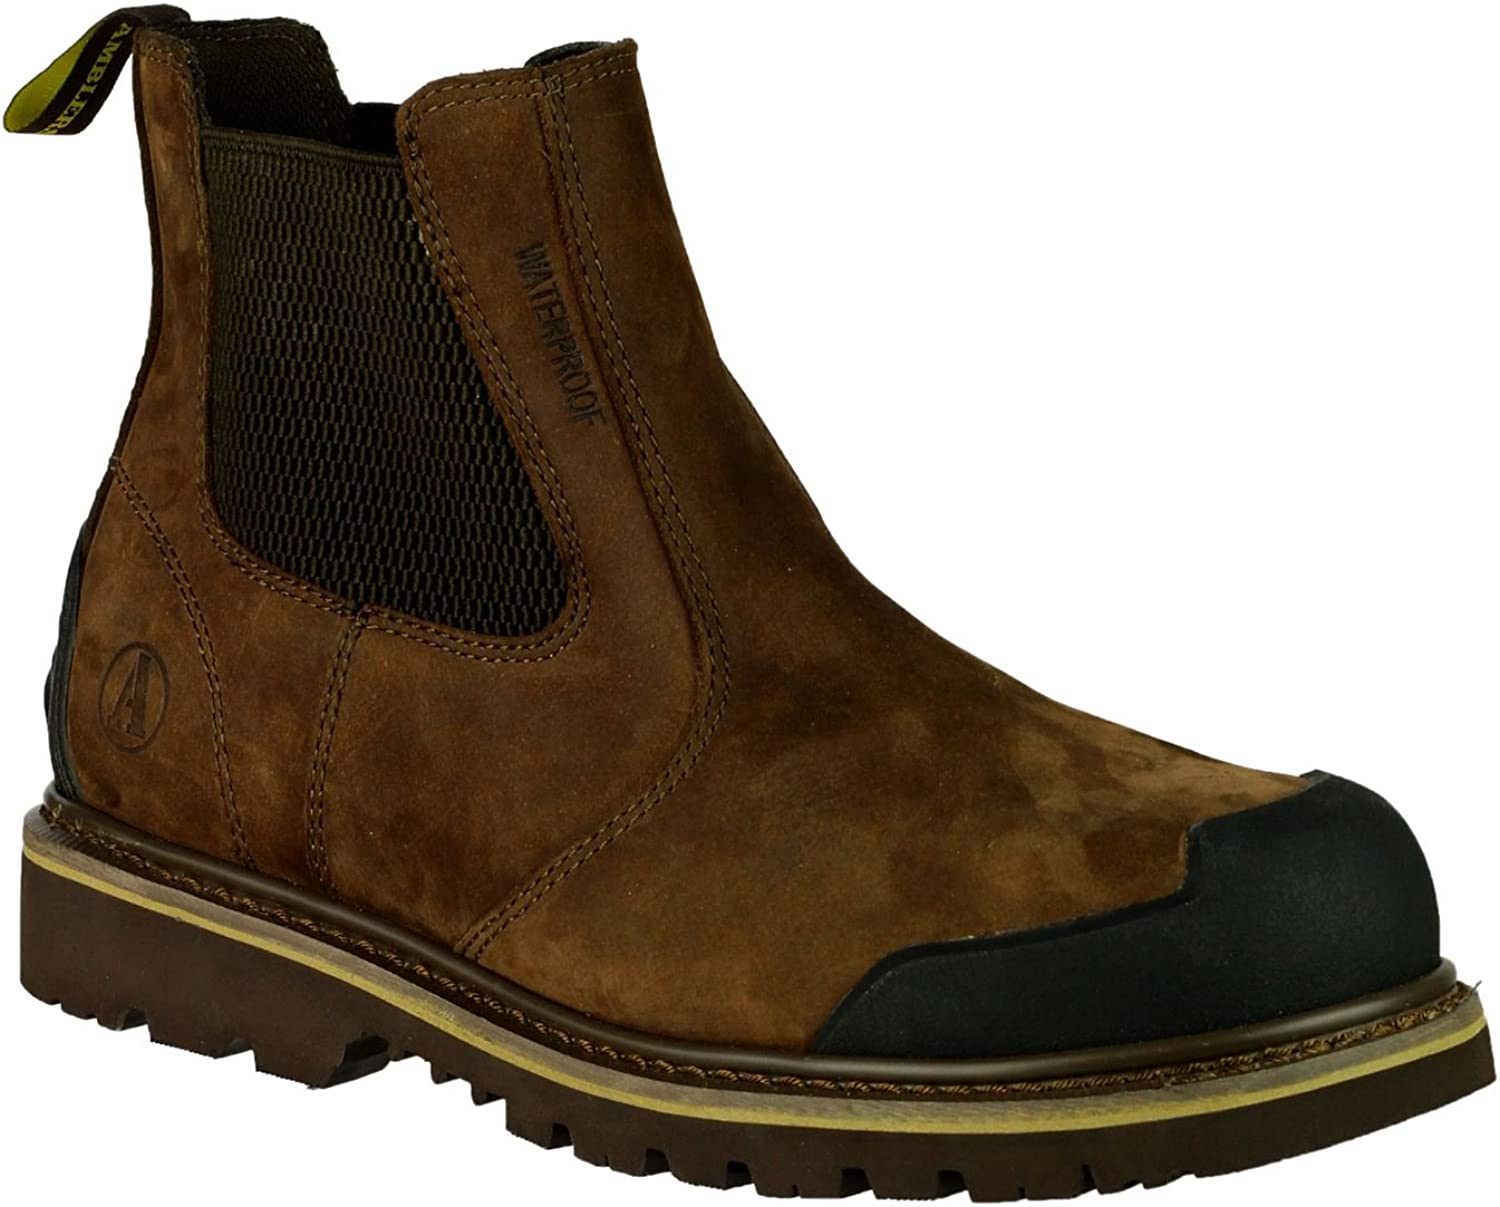 817b64731fa Mens Safety Safety Boot 12 Amblers FS225 nzphxs1642-New Shoes - www ...